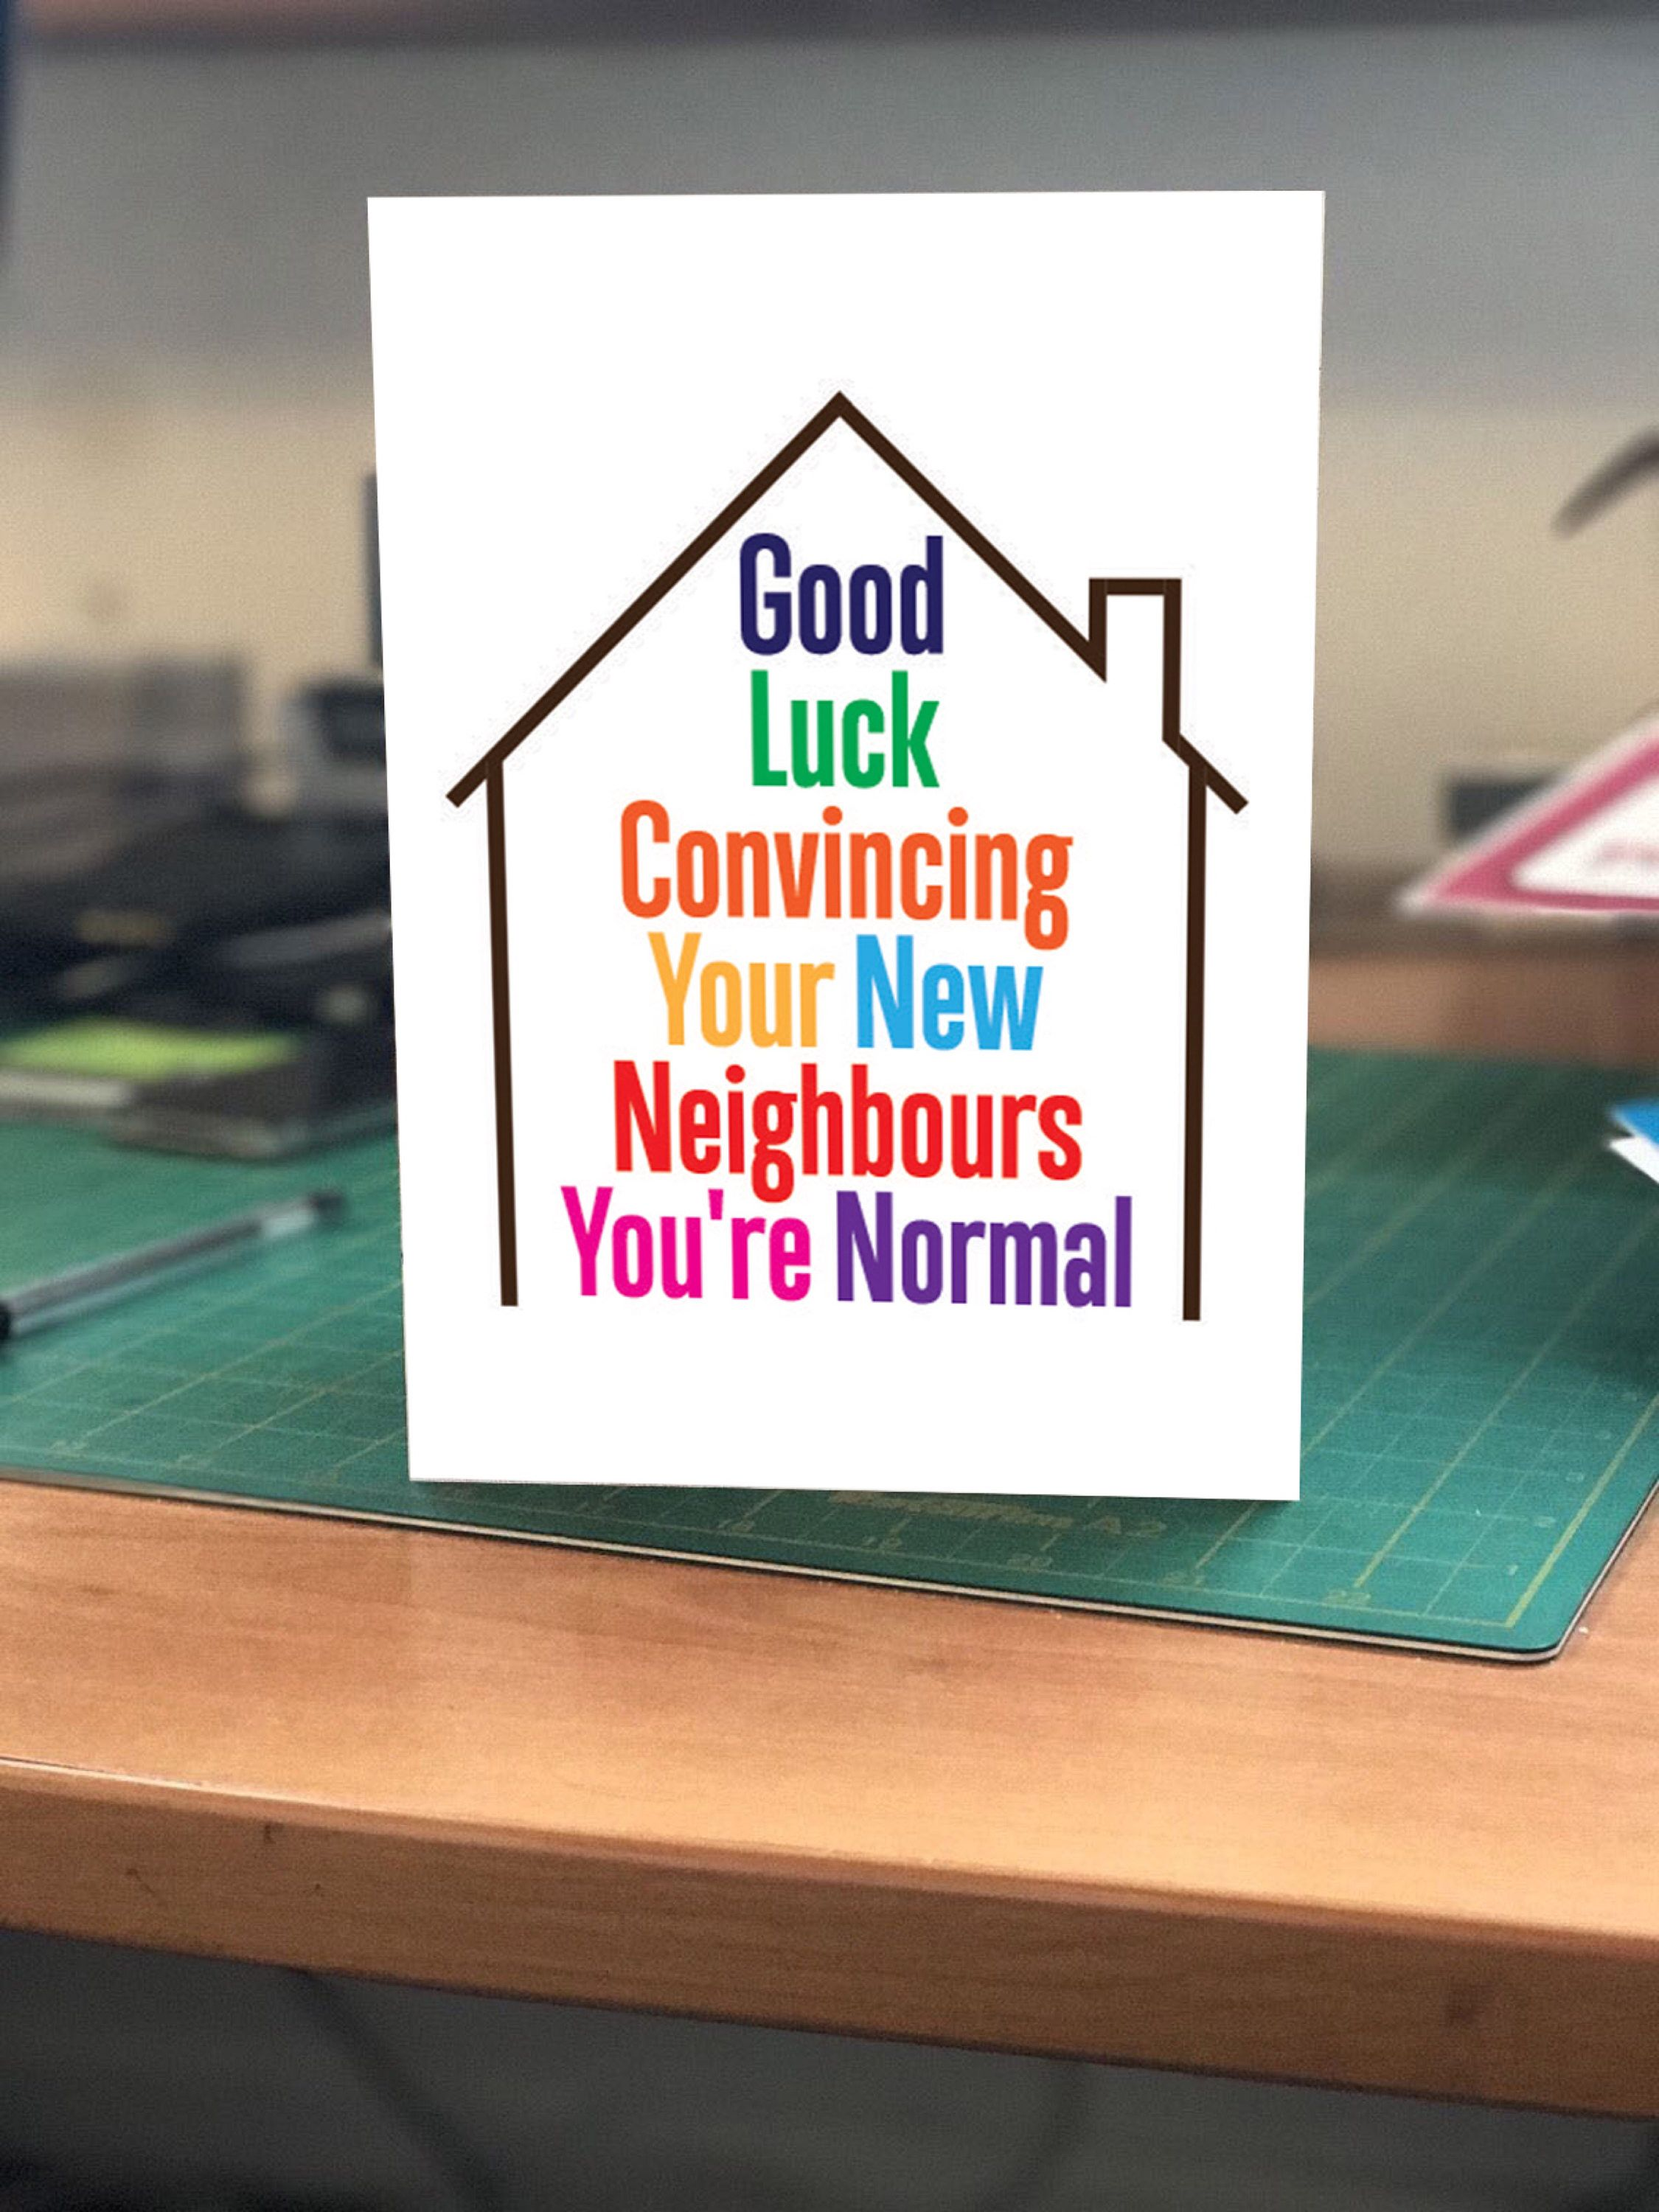 Congratulations on your new home greetings card funny humour by congratulations on your new home greetings card funny humour by bangorsignage on etsy https kristyandbryce Image collections